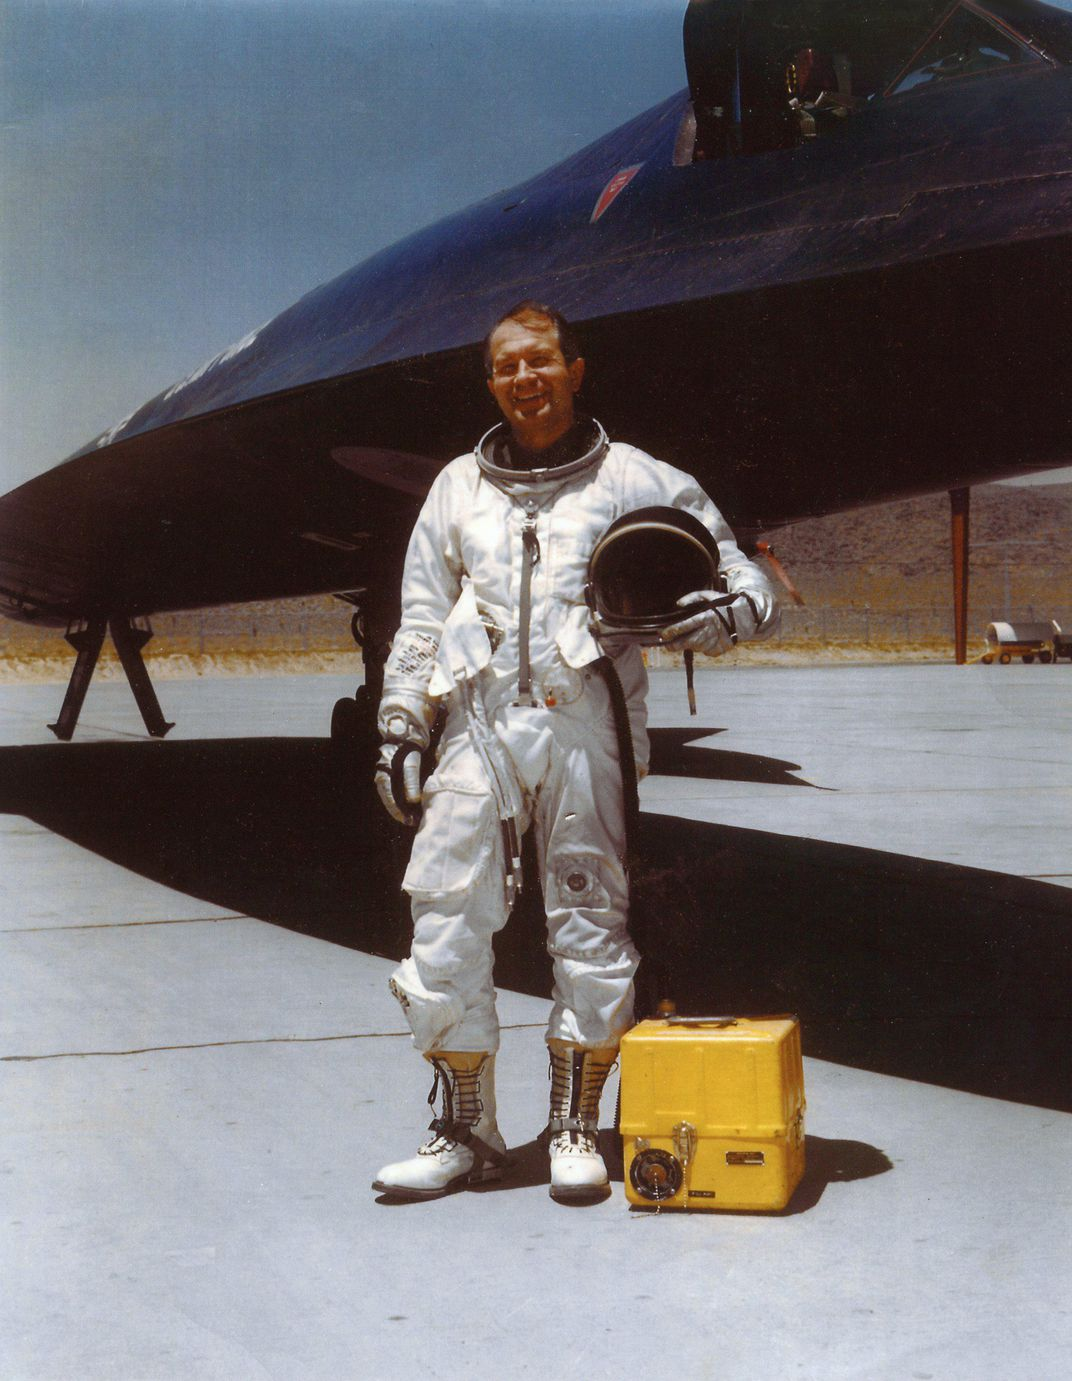 The A-12 program was so secret that CIA injected with sodium pentothal the first pilot that bailed out of an Oxcart to interrogate him after the crash